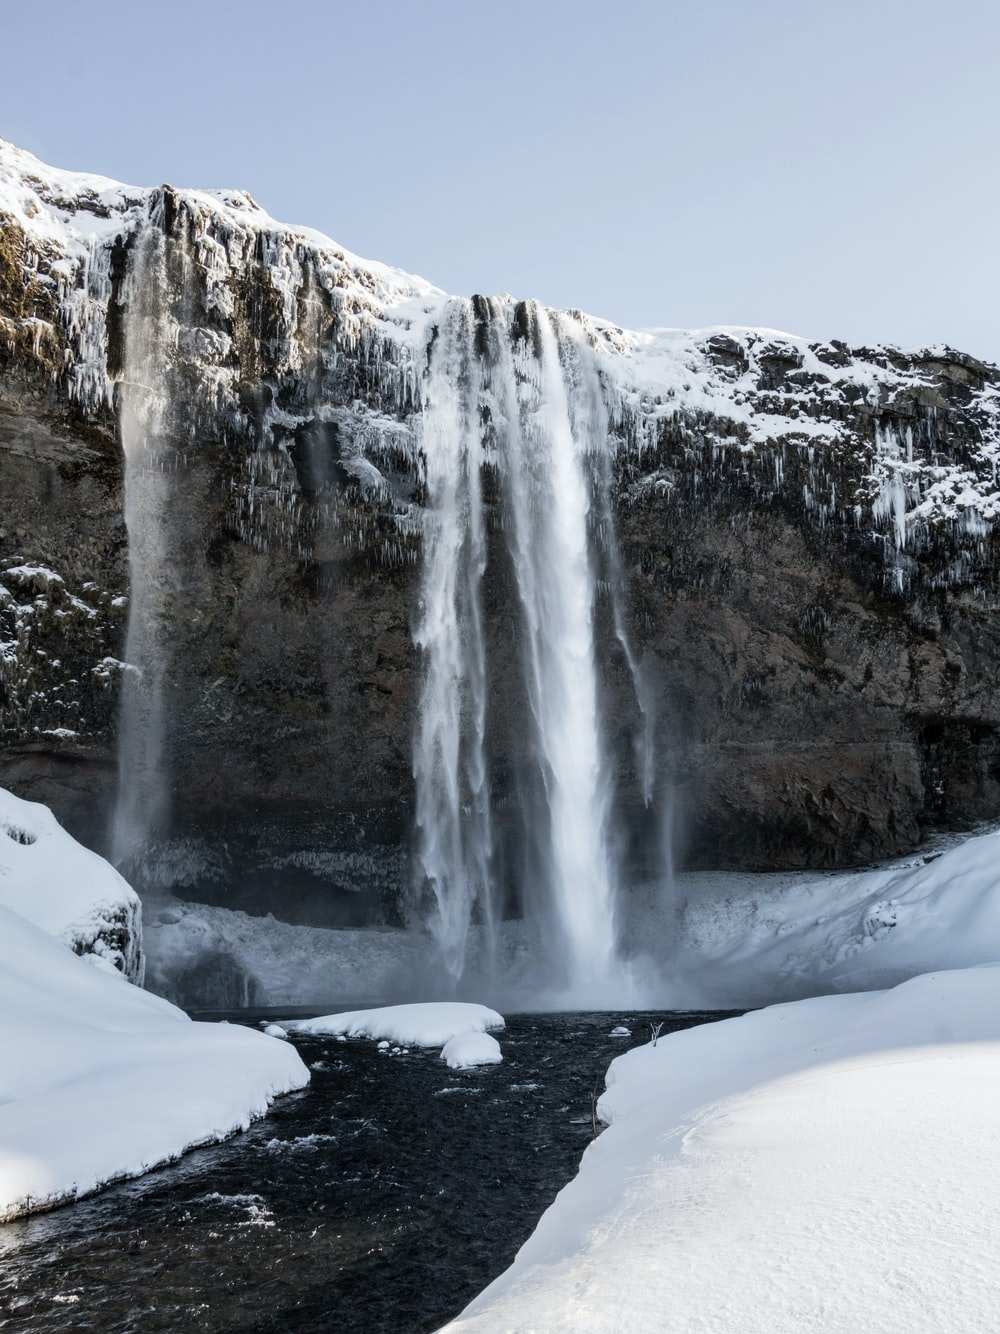 waterfalls on snow covered ground during daytime